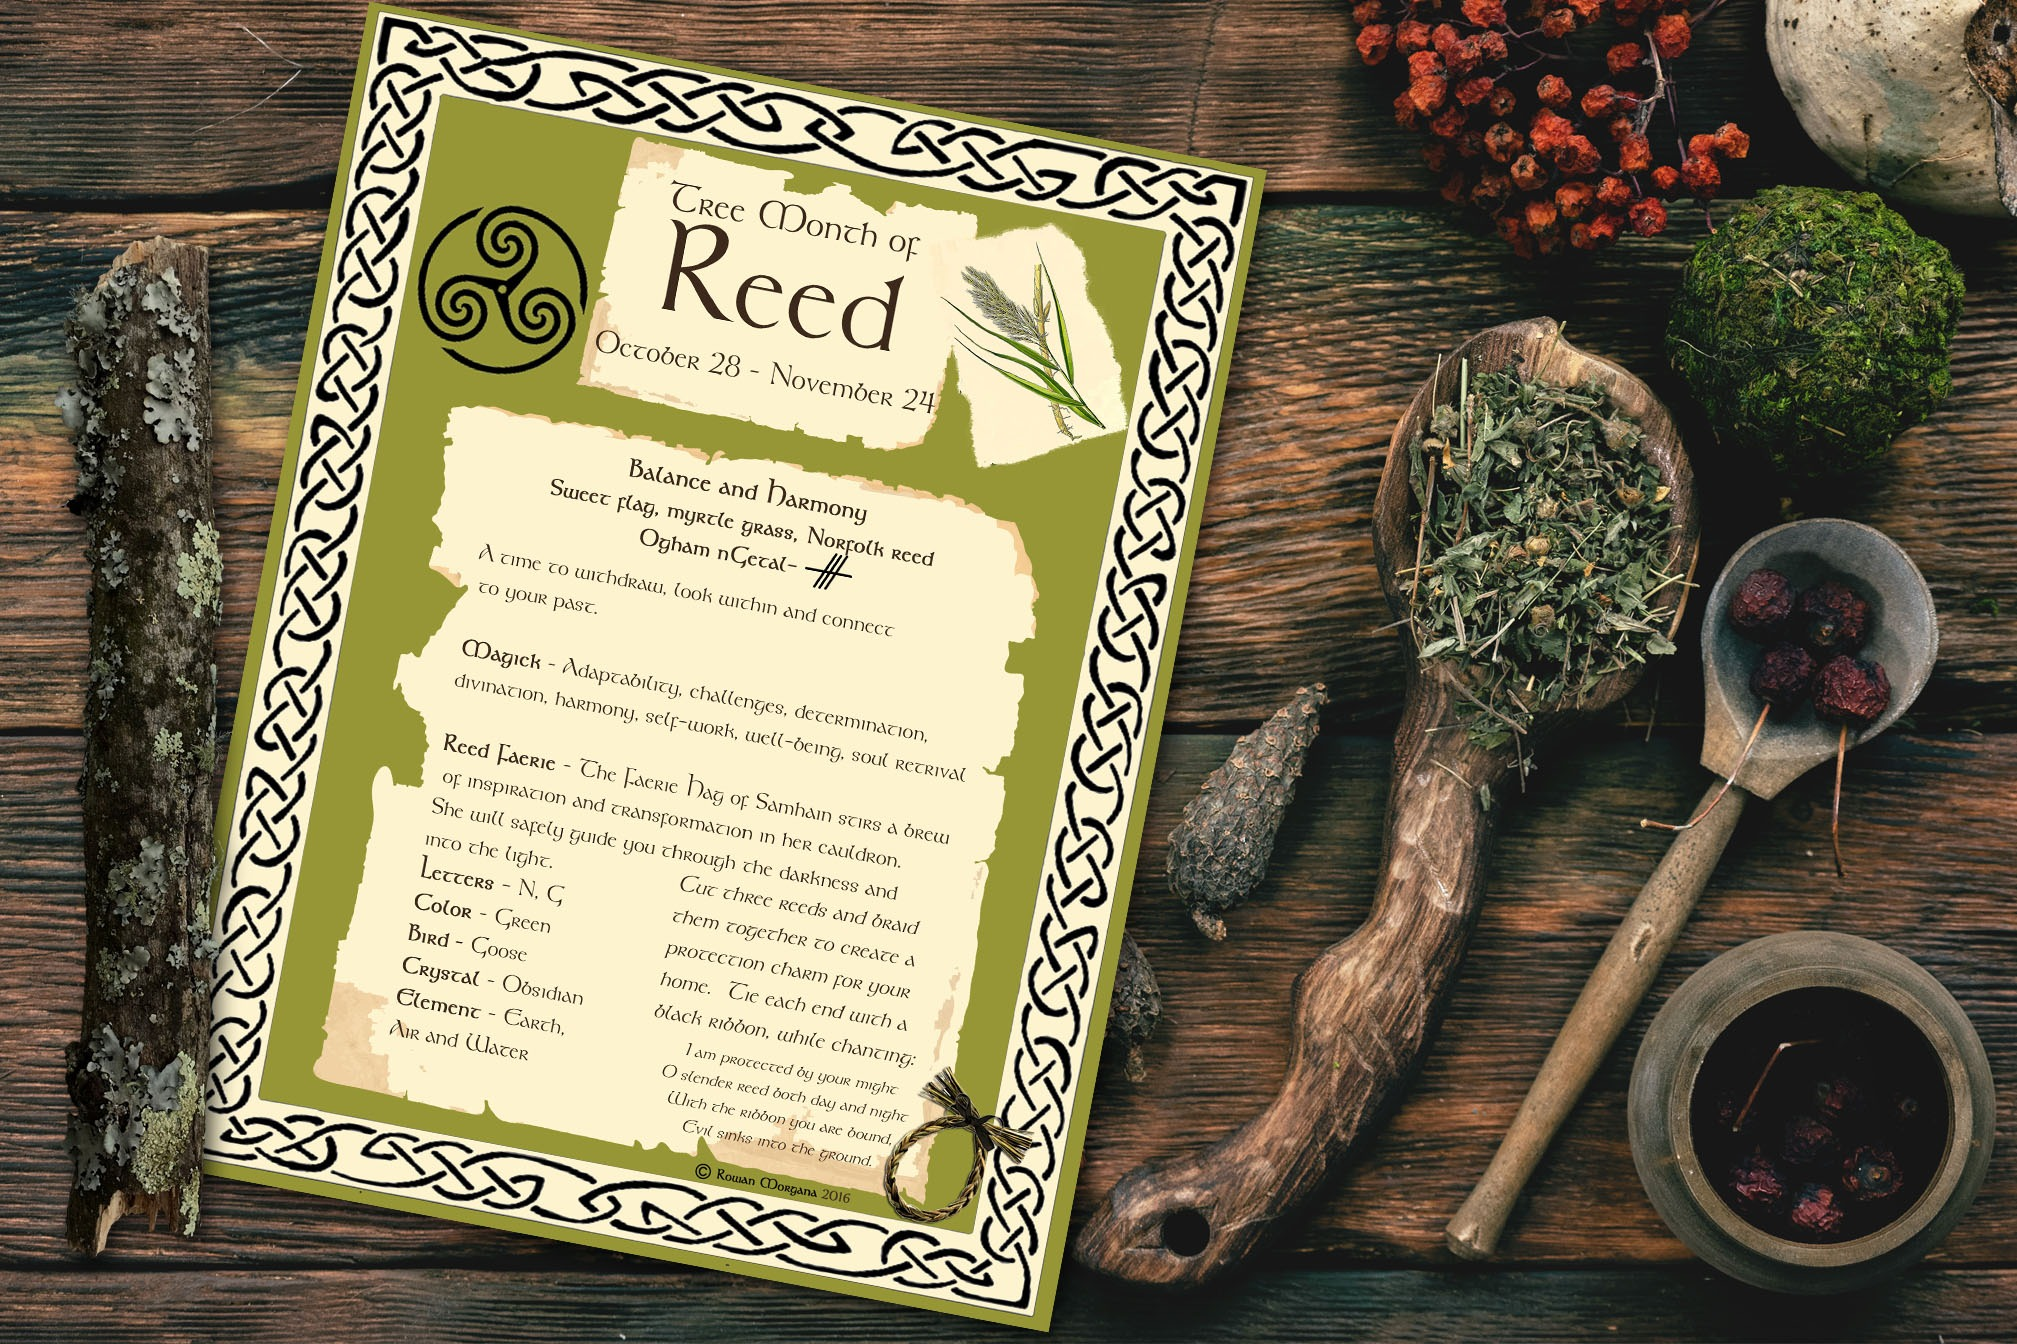 REED CELTIC TREE